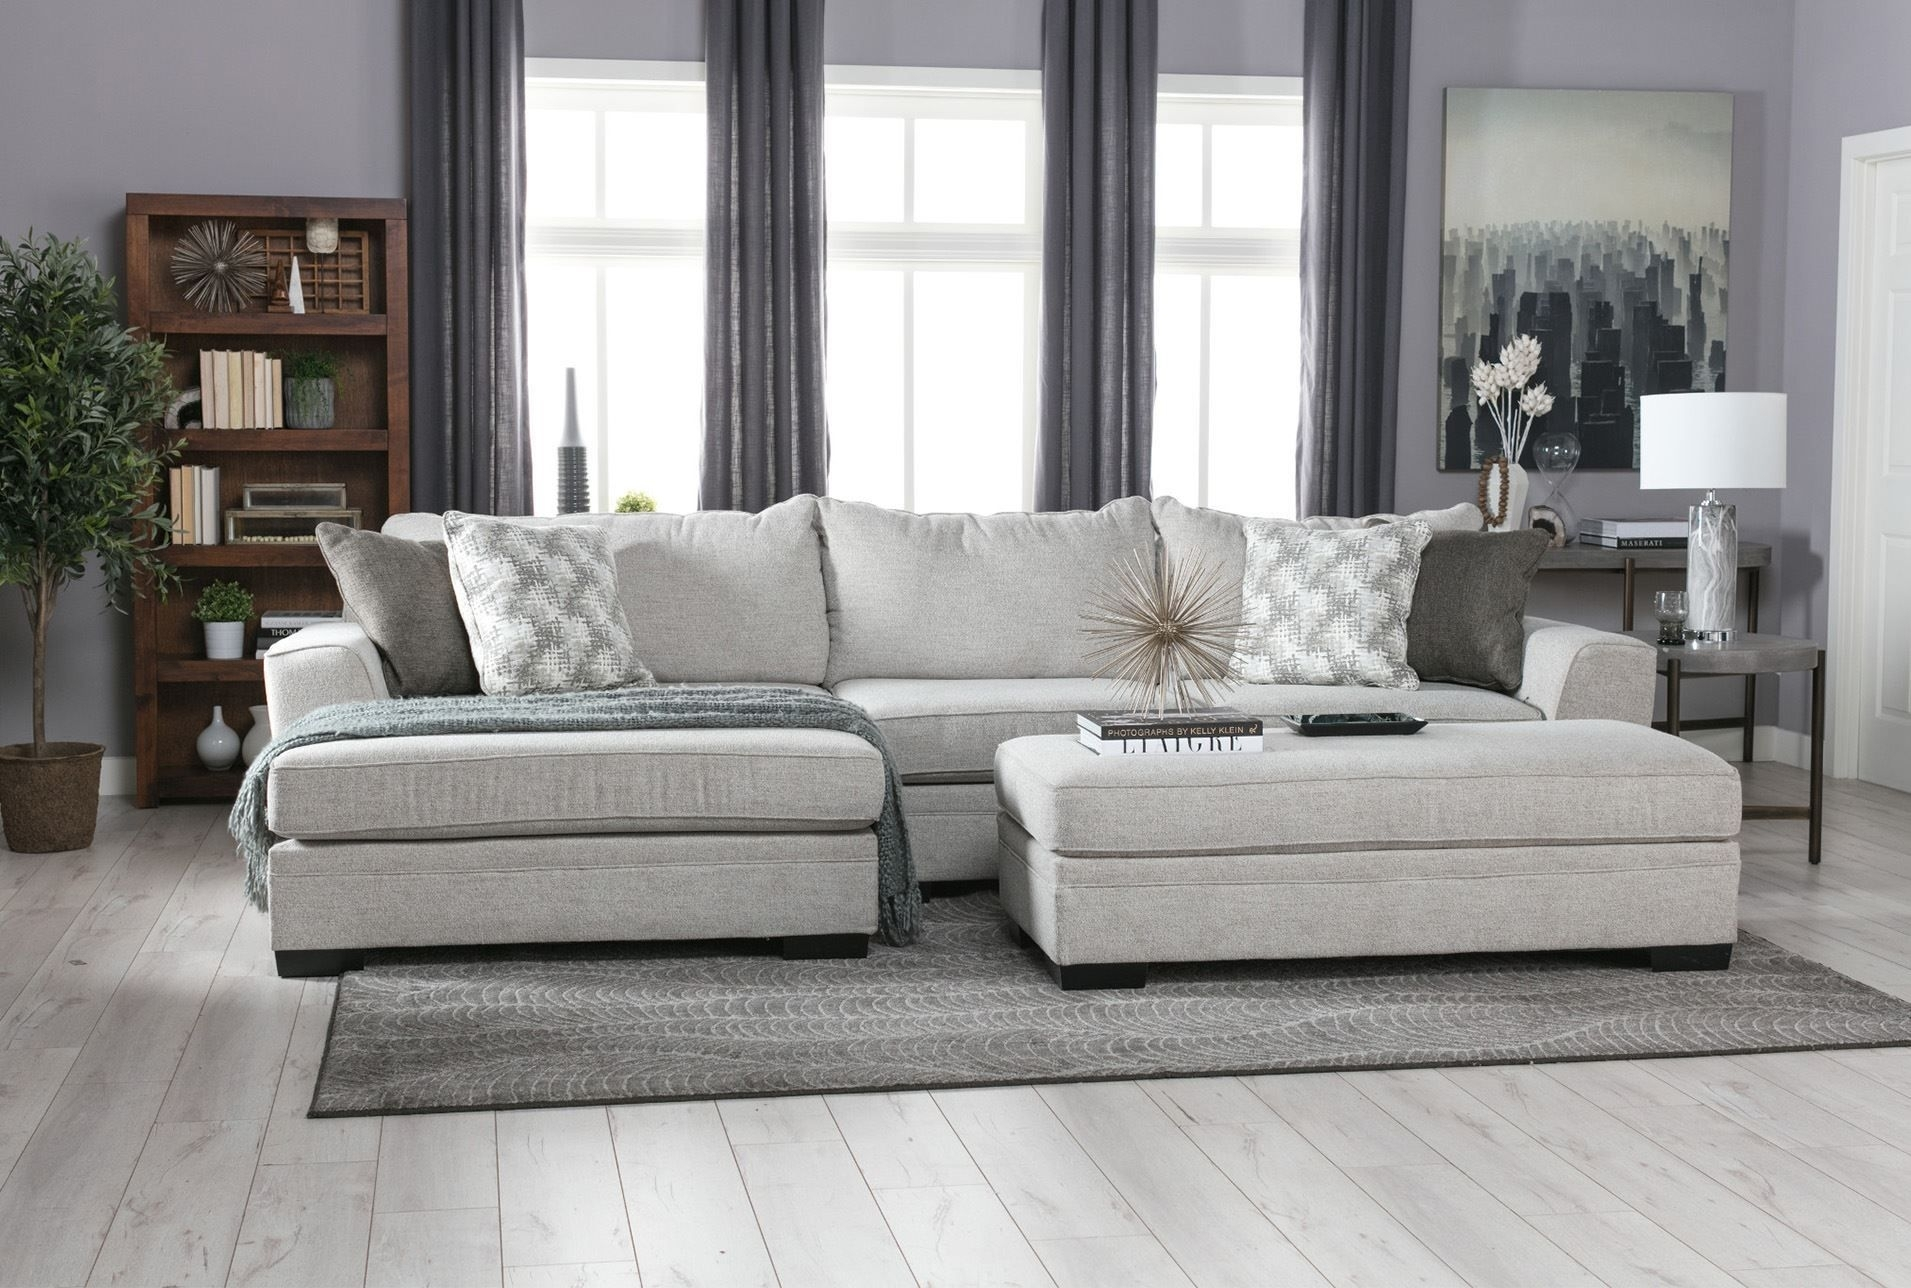 Delano 2 Piece Sectional W/laf Oversized Chaise | Sylvia Son With Haven Blue Steel 3 Piece Sectionals (View 9 of 25)